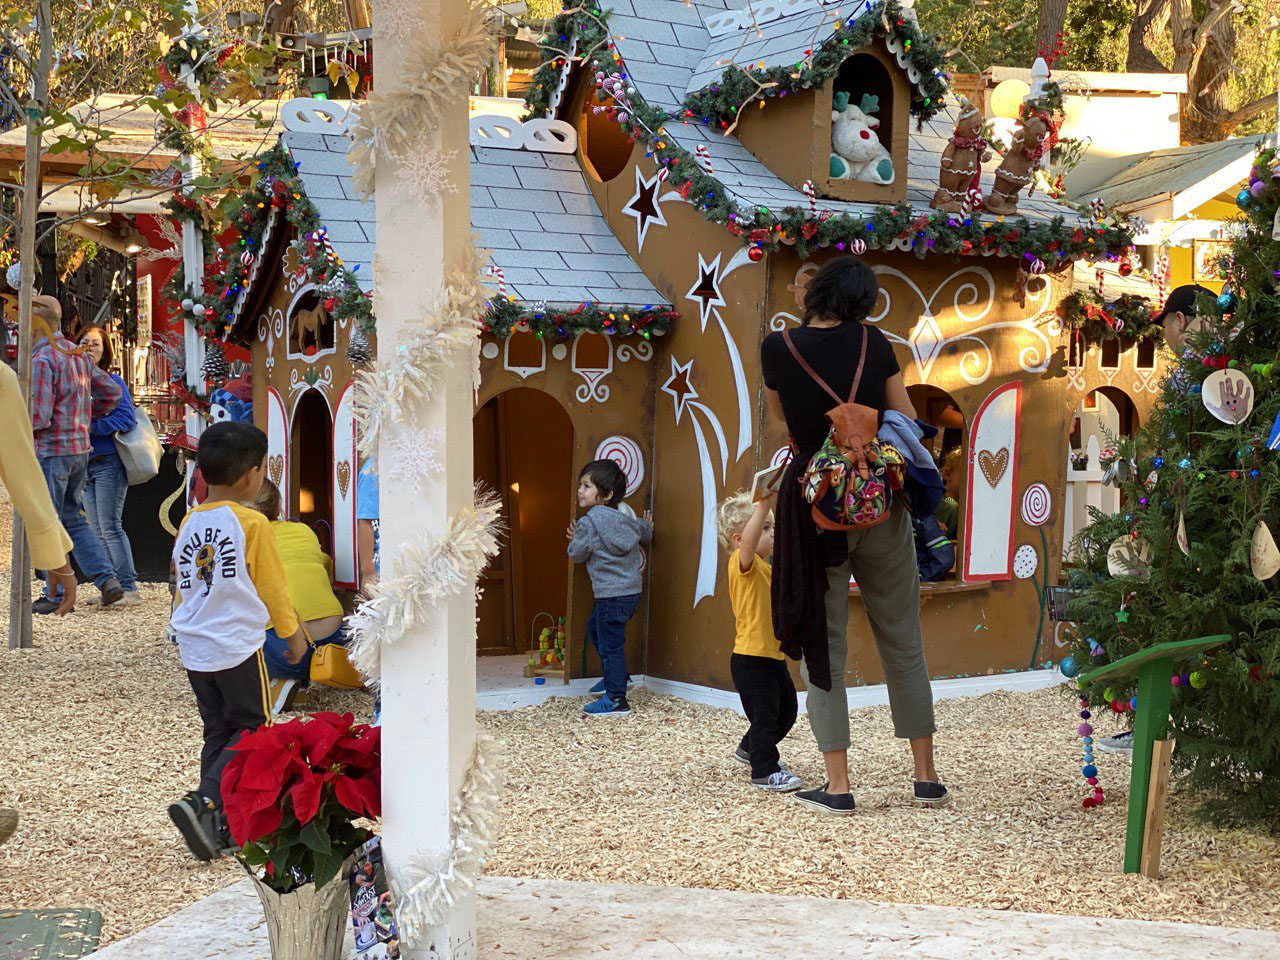 Gingerbread House in Fashion Island